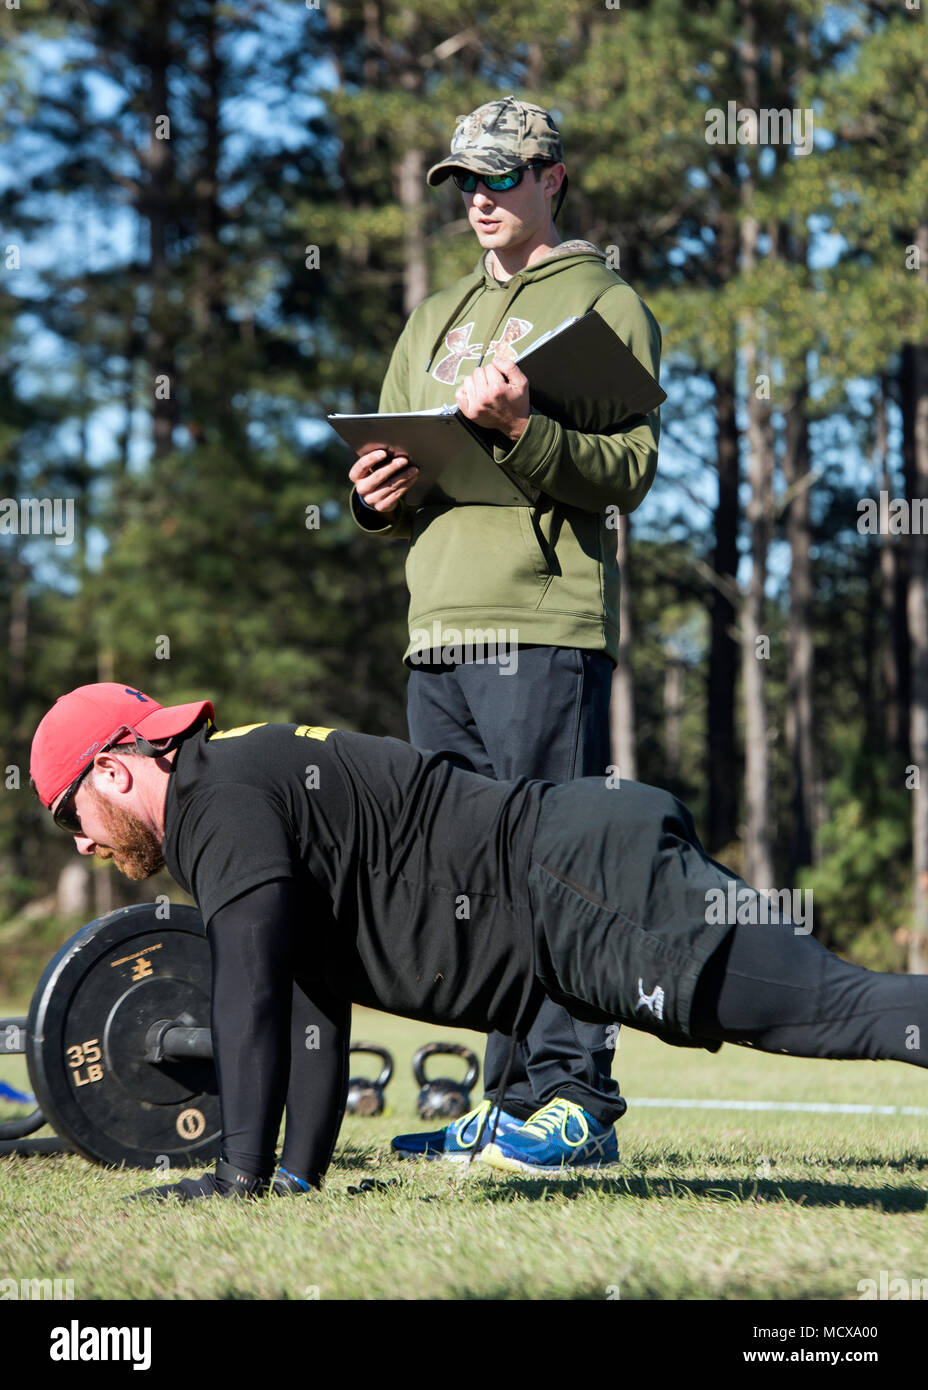 Coach Jacob Crouch with the South Carolina National Guard Warrior Fitness Program demonstrates the proposed Army Combat Readiness Test (ACRT) at McCrady Training Center, Eastover, South Carolina, Mar. 4, 2018. (U.S. Army National Guard photo by Sgt. Brian Calhoun, 108th Public Affairs Detachment) - Stock Image